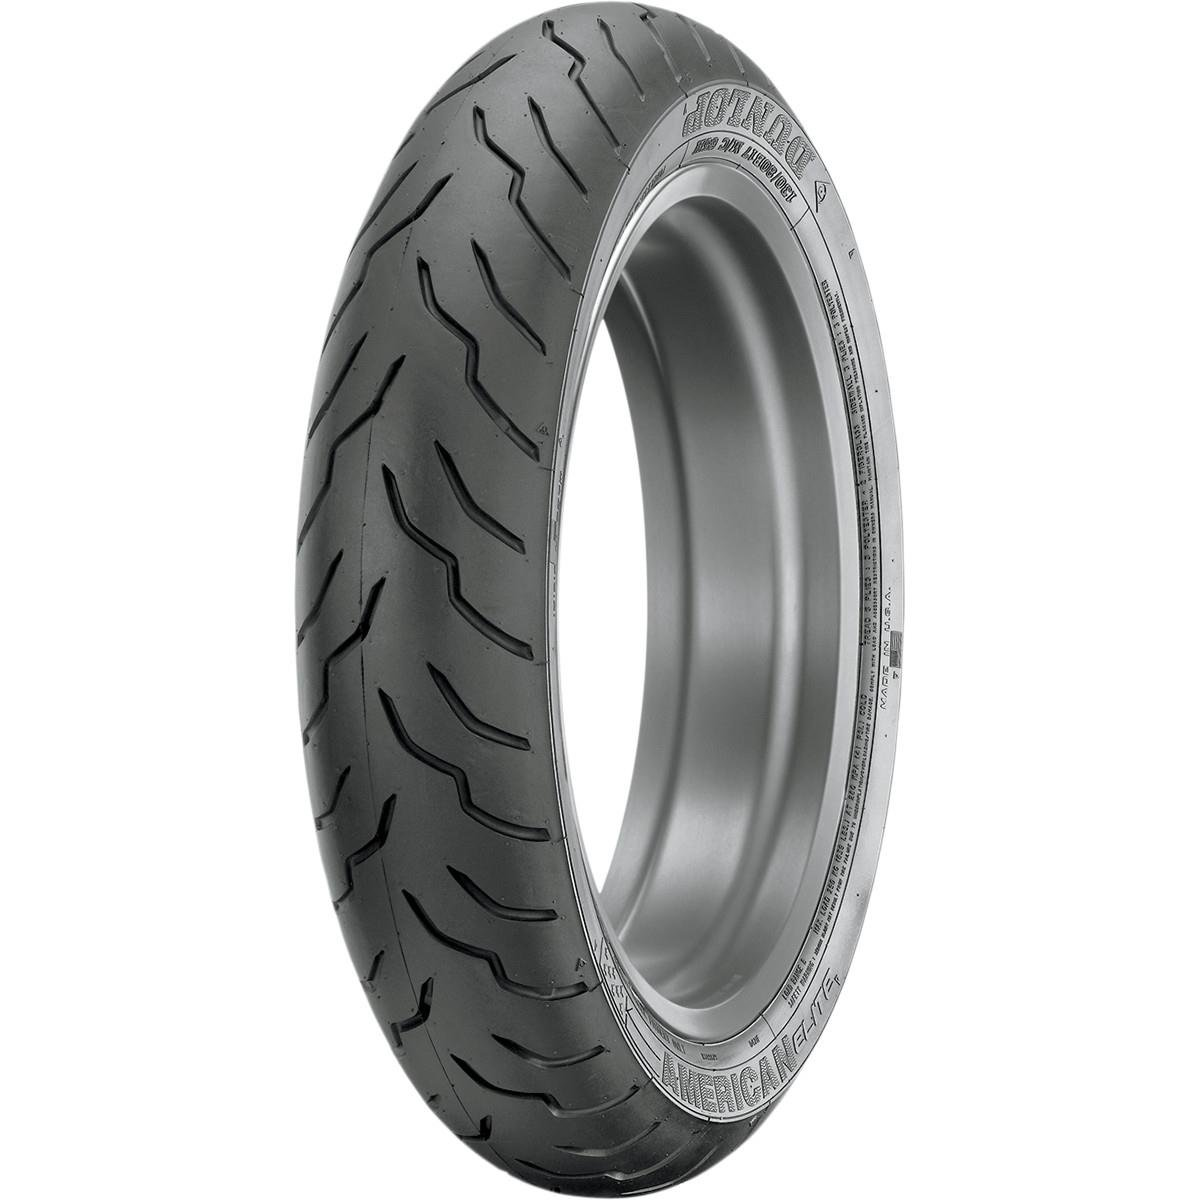 Dunlop Tires American Elite Front Tire - 100/90-19, Position: Front, Rim Size: 19, Tire Application: Touring, Tire Size: 100/90-19, Tire Type: Street, Load Rating: 57, Speed Rating: H, Tire Construc